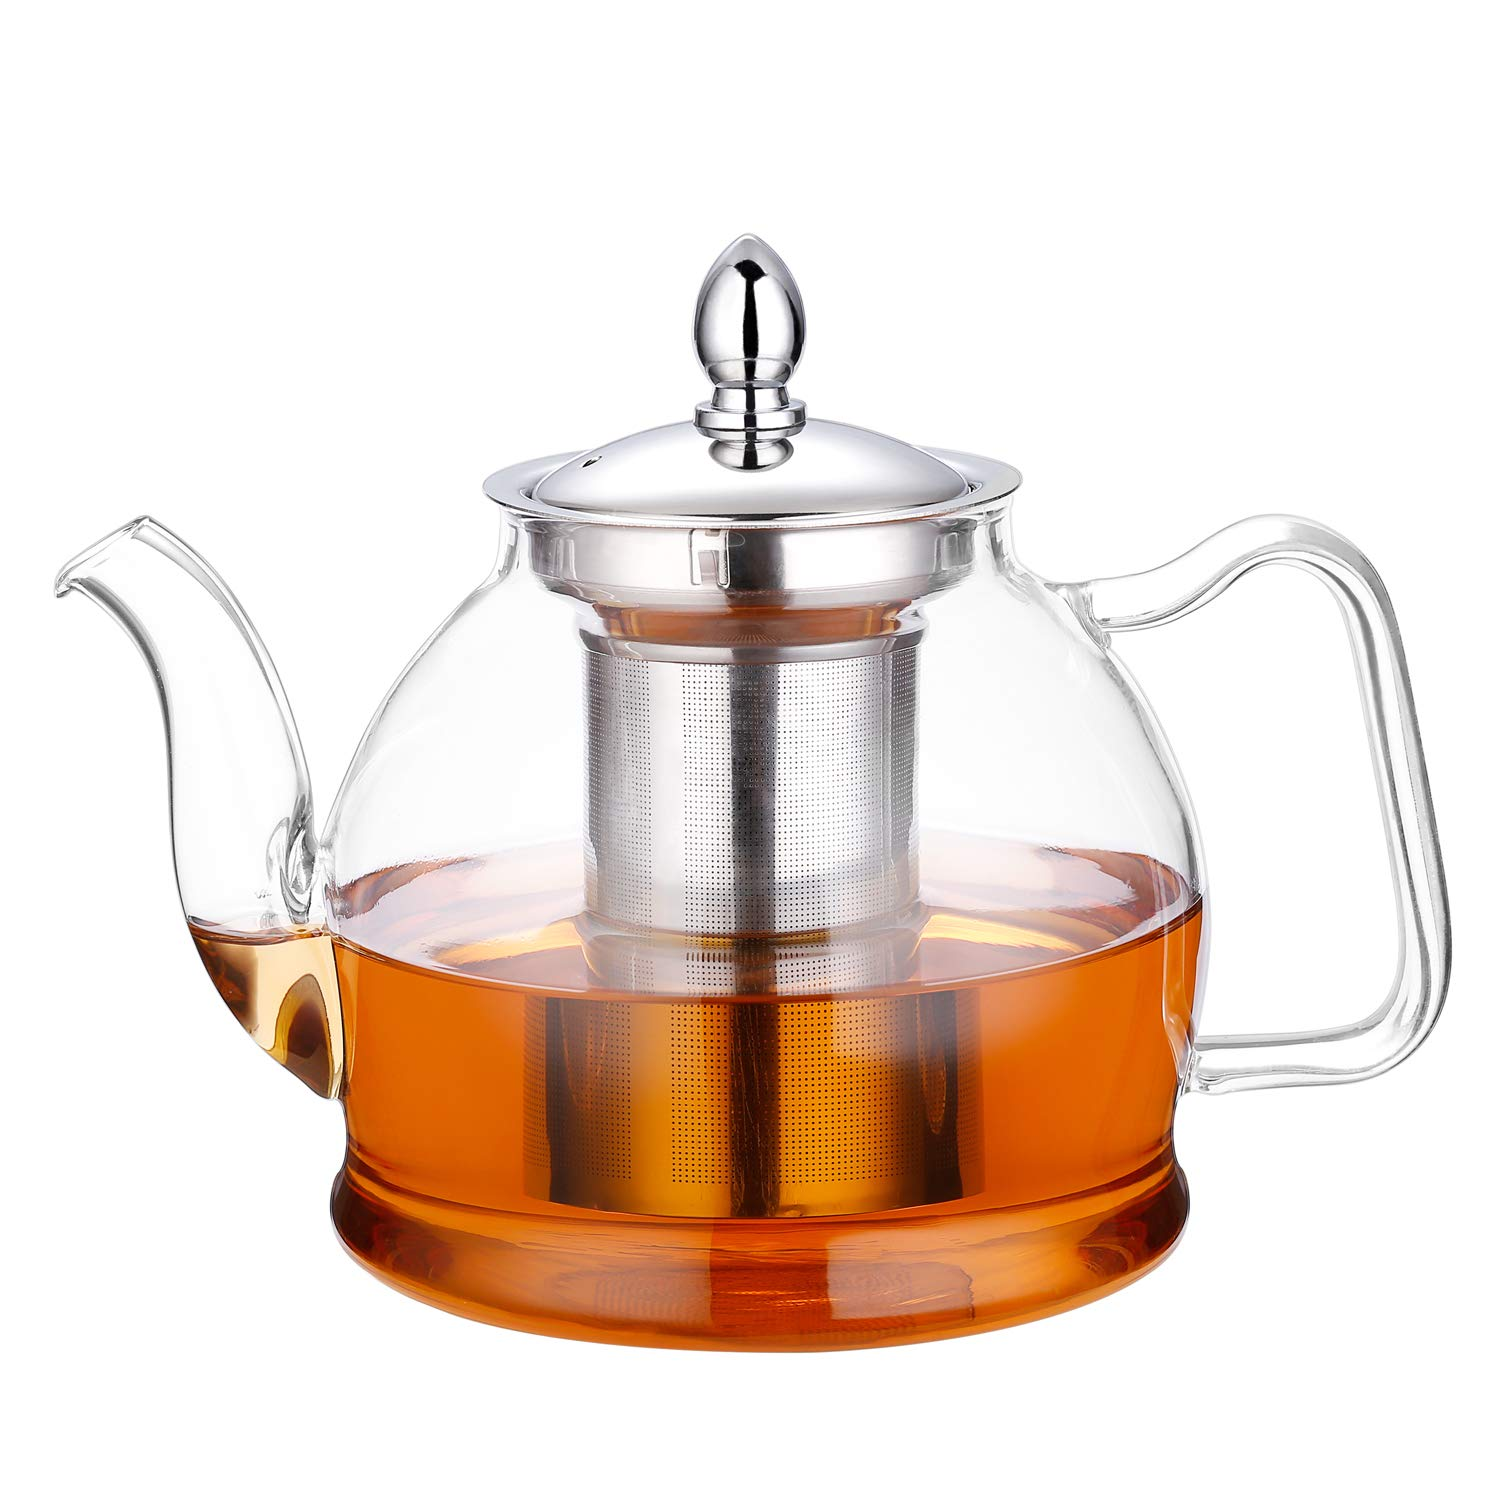 Hiware 1000ml Glass Teapot with Removable Infuser, Stovetop Safe Tea Kettle, Blooming and Loose Leaf Tea Maker Set by Hiware